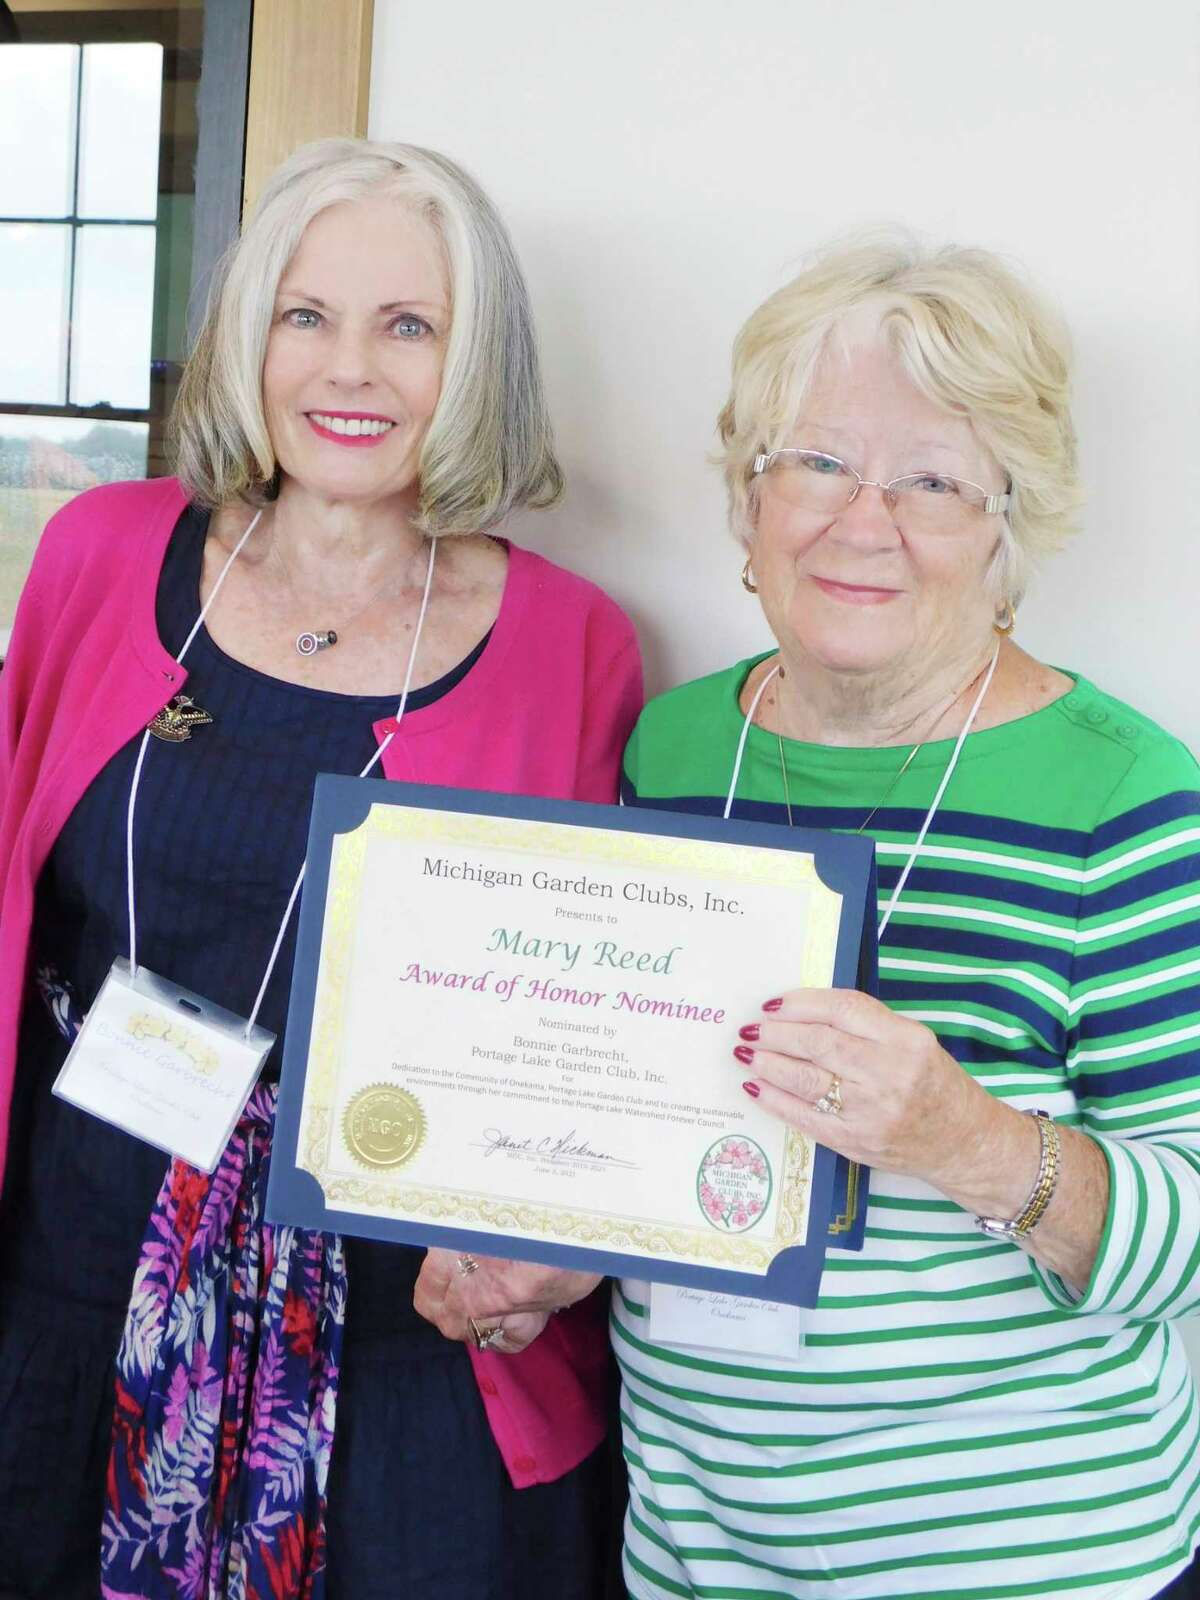 Mary Reed, of Onekama, has been nominated for theMichigan Garden Club Award of Honor. She is pictured withPortage Lake Garden ClubPresident Bonnie Garbrecht. (Courtesy photo/Chris Gravlin)